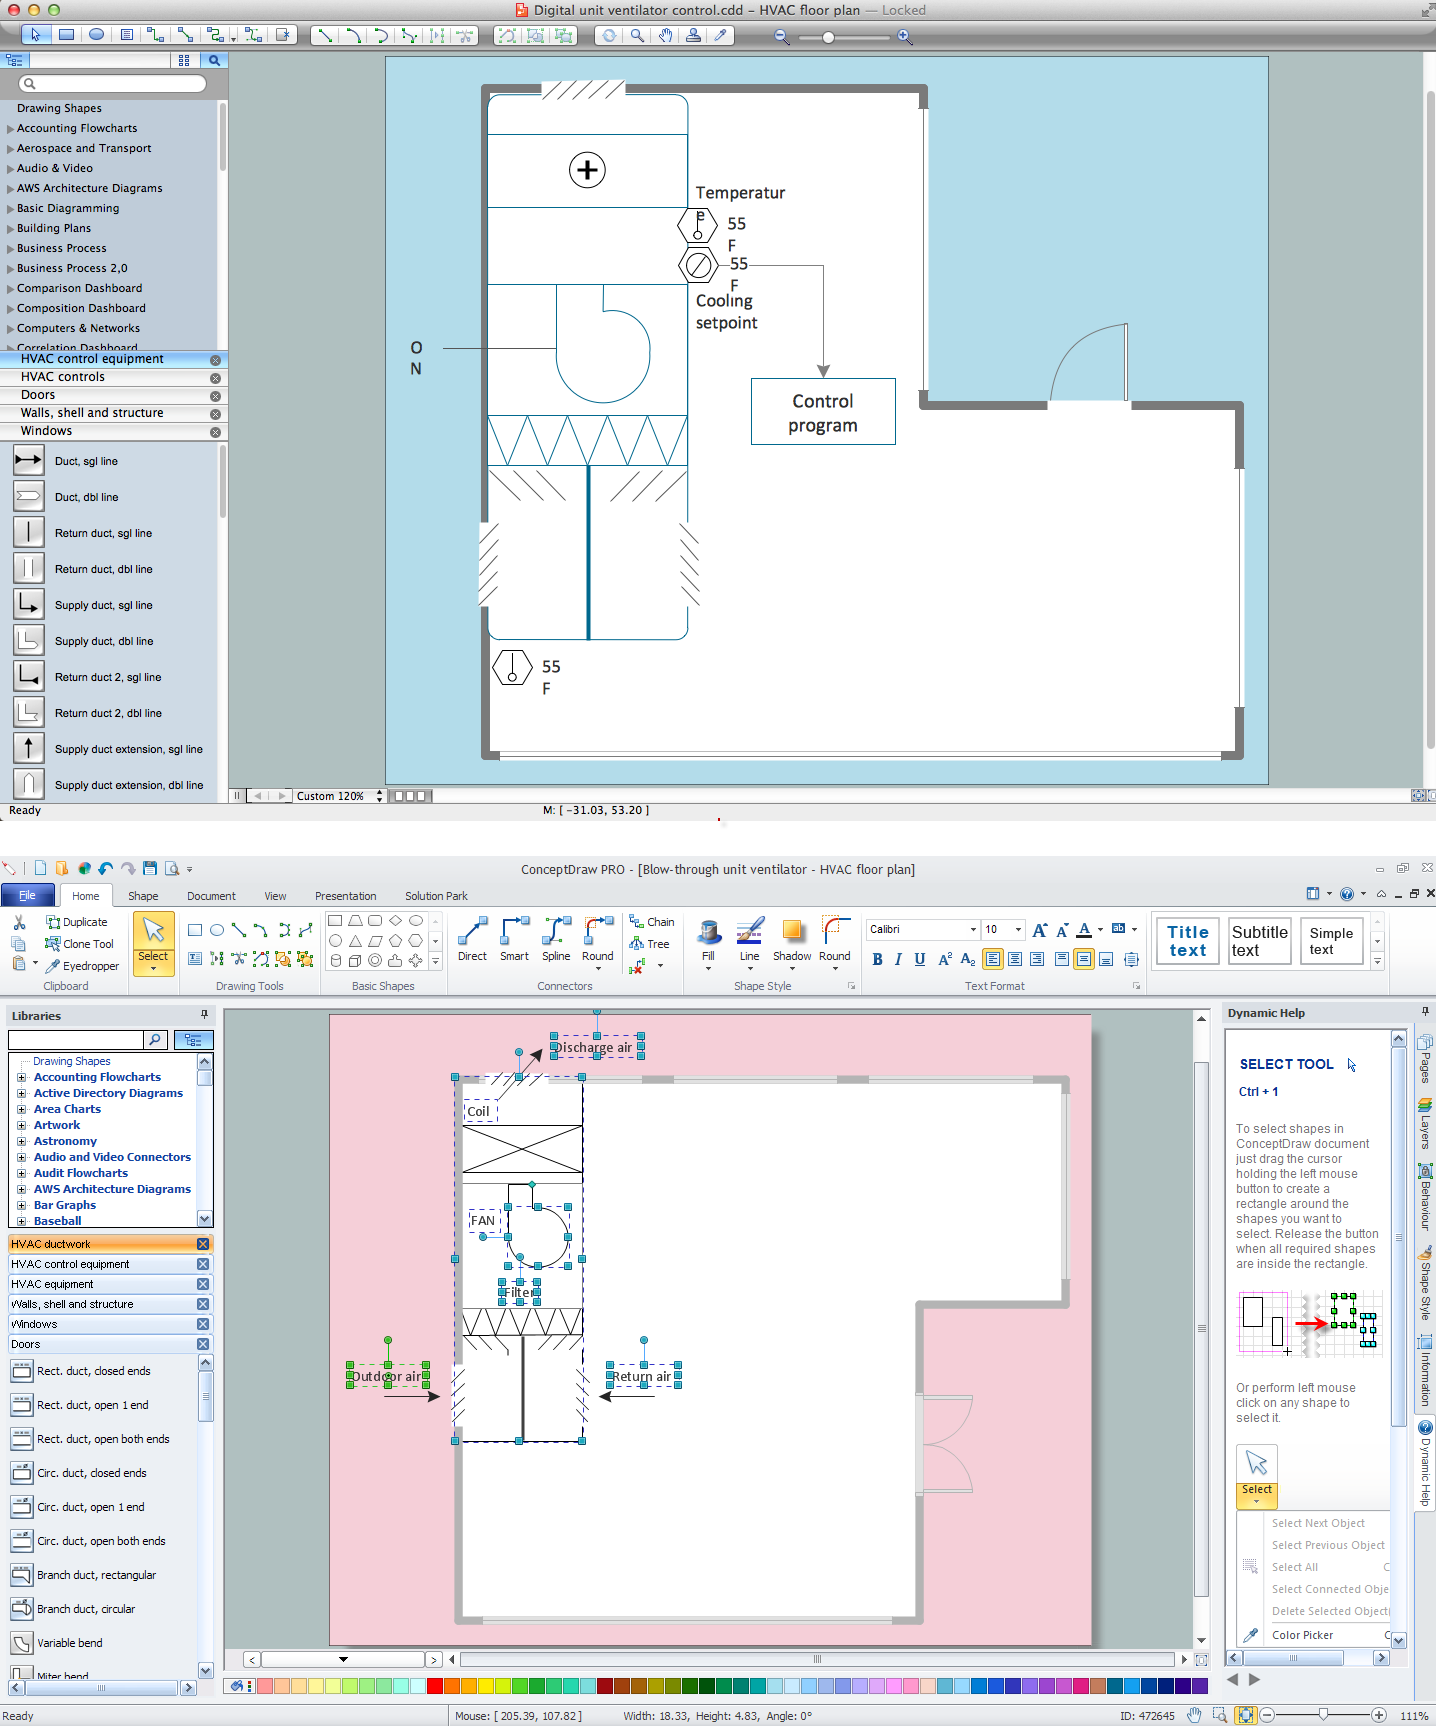 House Wiring Diagram Sample Library Electrical Schematic Drawings Get Free Image About Plan Software Rh Conceptdraw Com Floor